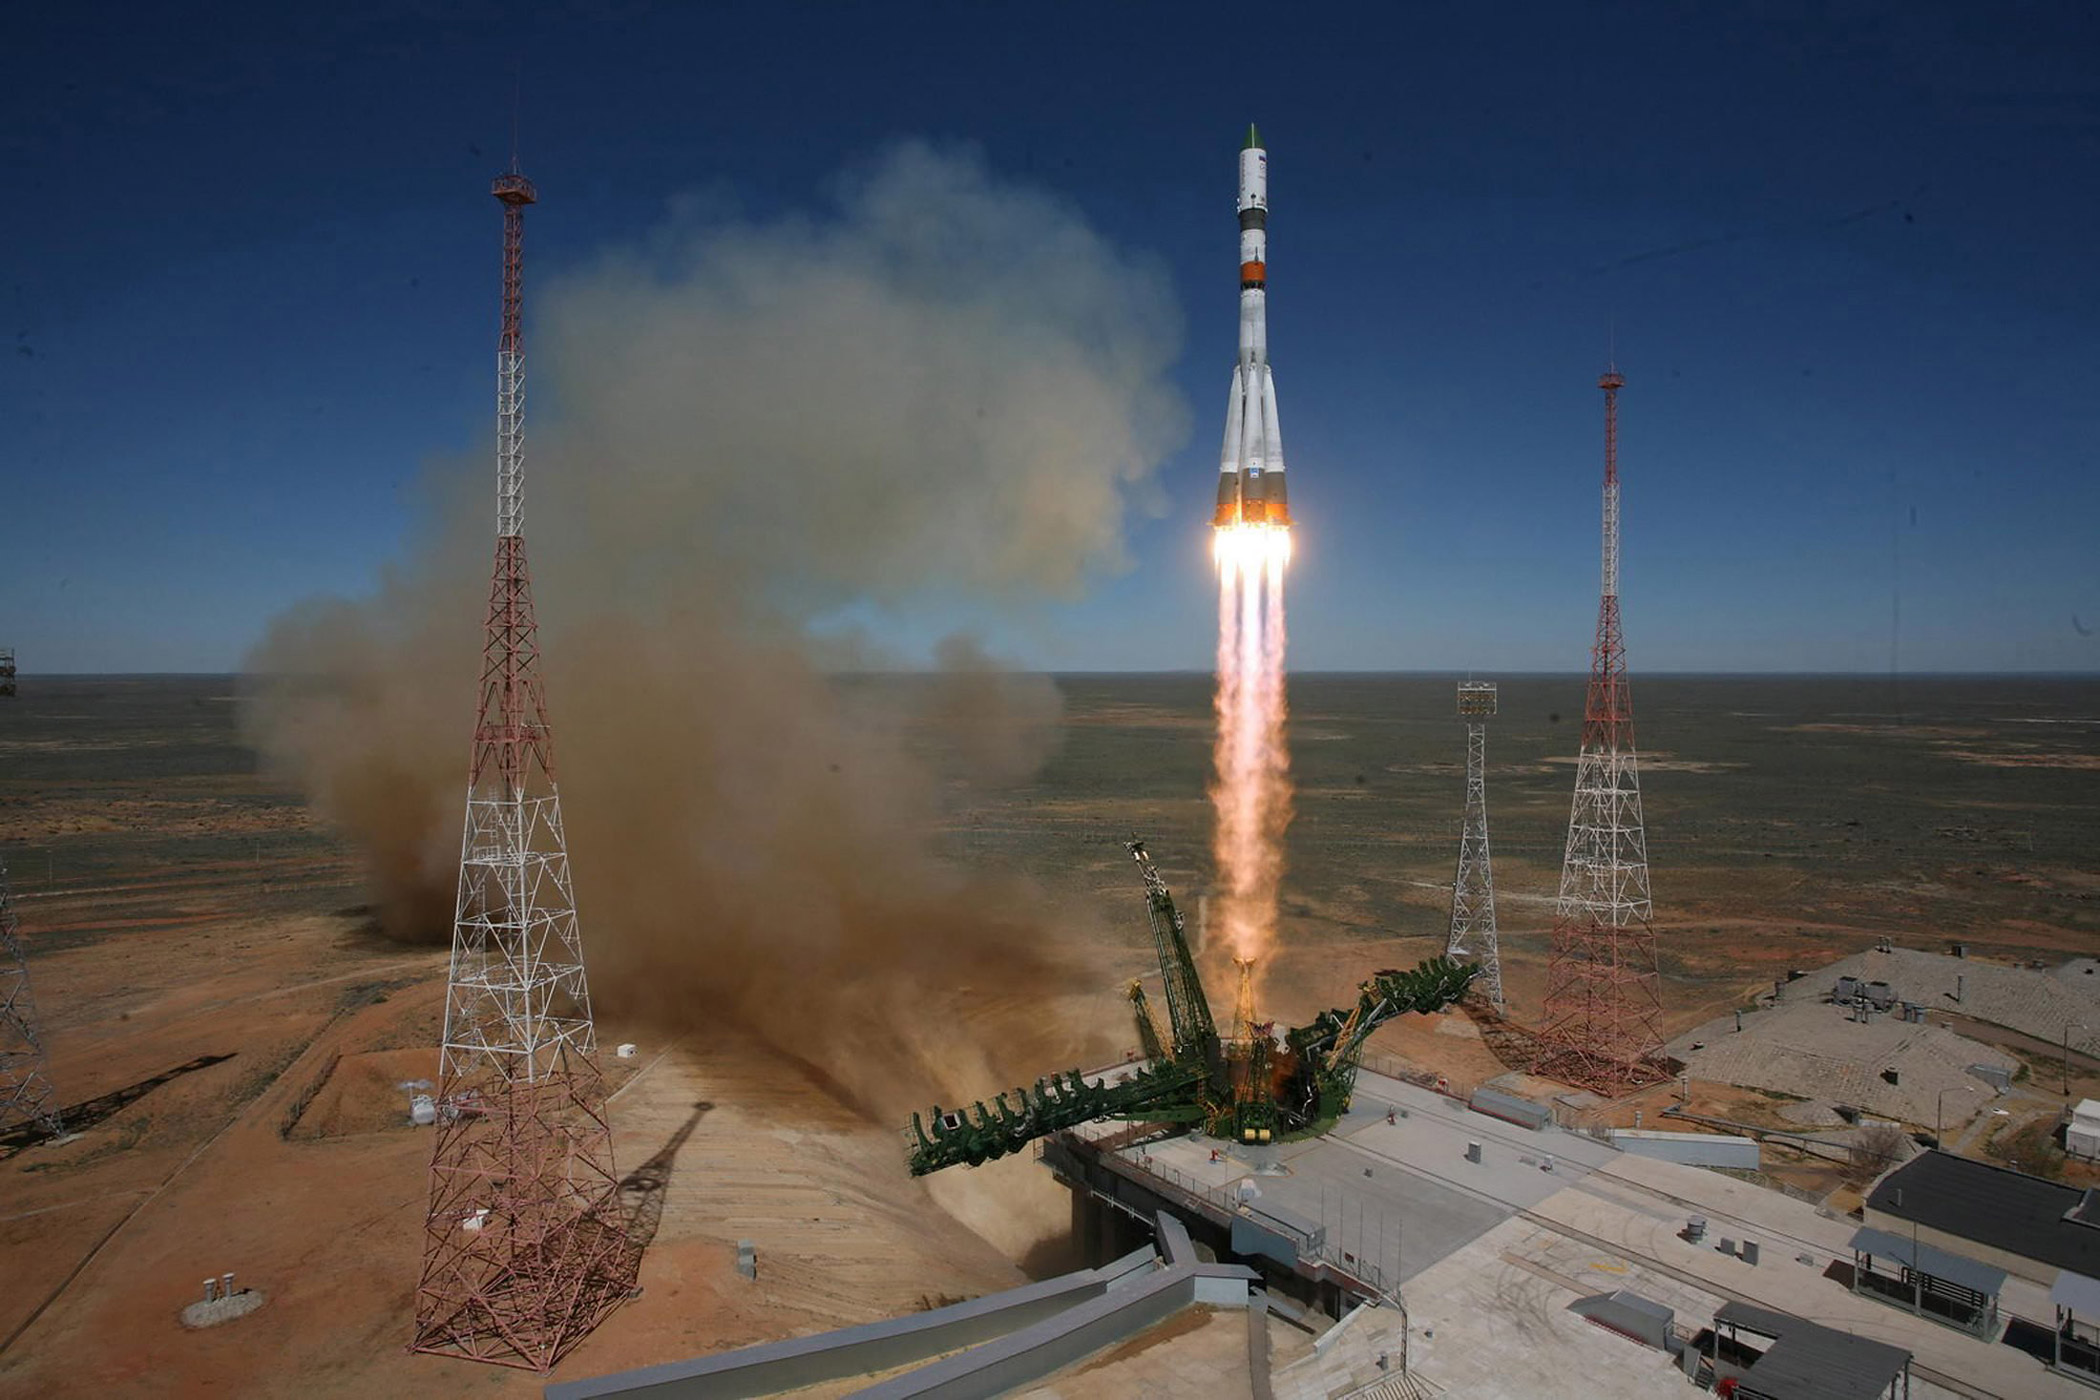 A Russian Soyuz-2.1a launch vehicle carrying a Progress M-27M cargo ship lifts off from the Baikonur cosmodrome in Kazakhstan, on April 28, 2015.